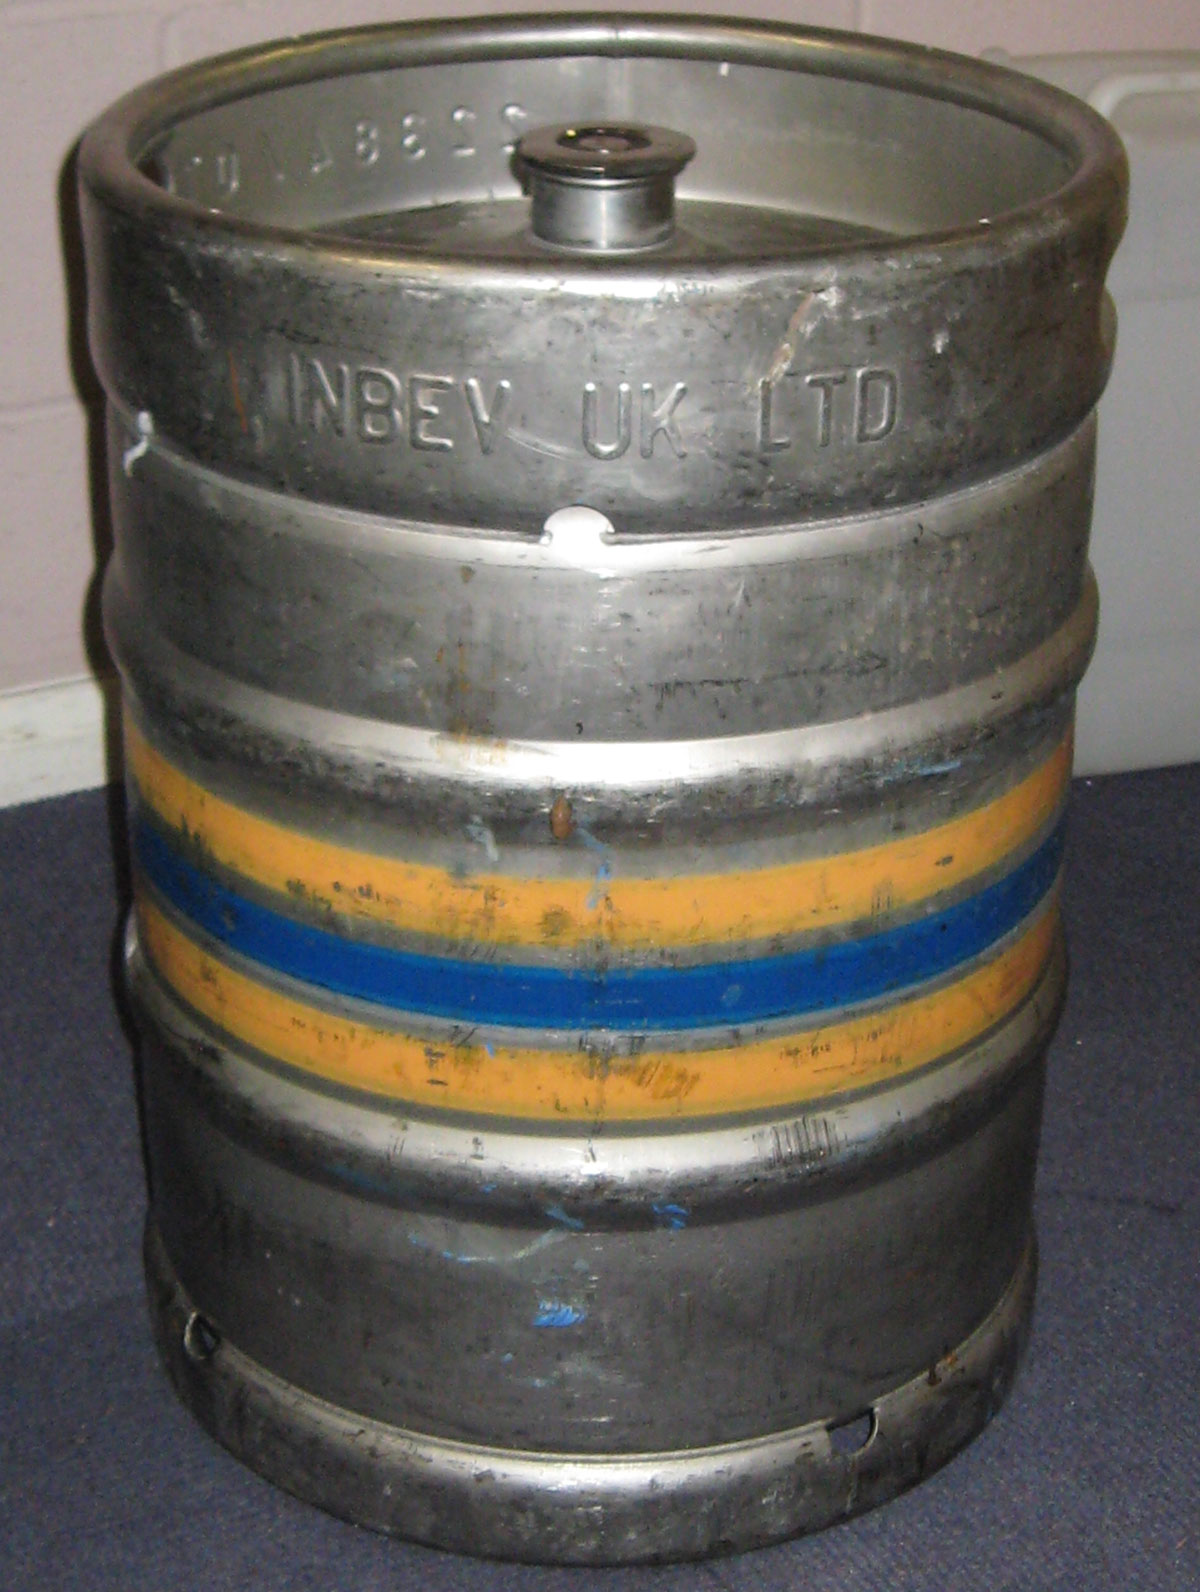 Are you owner of stolen beer keg found in wheelie bin?